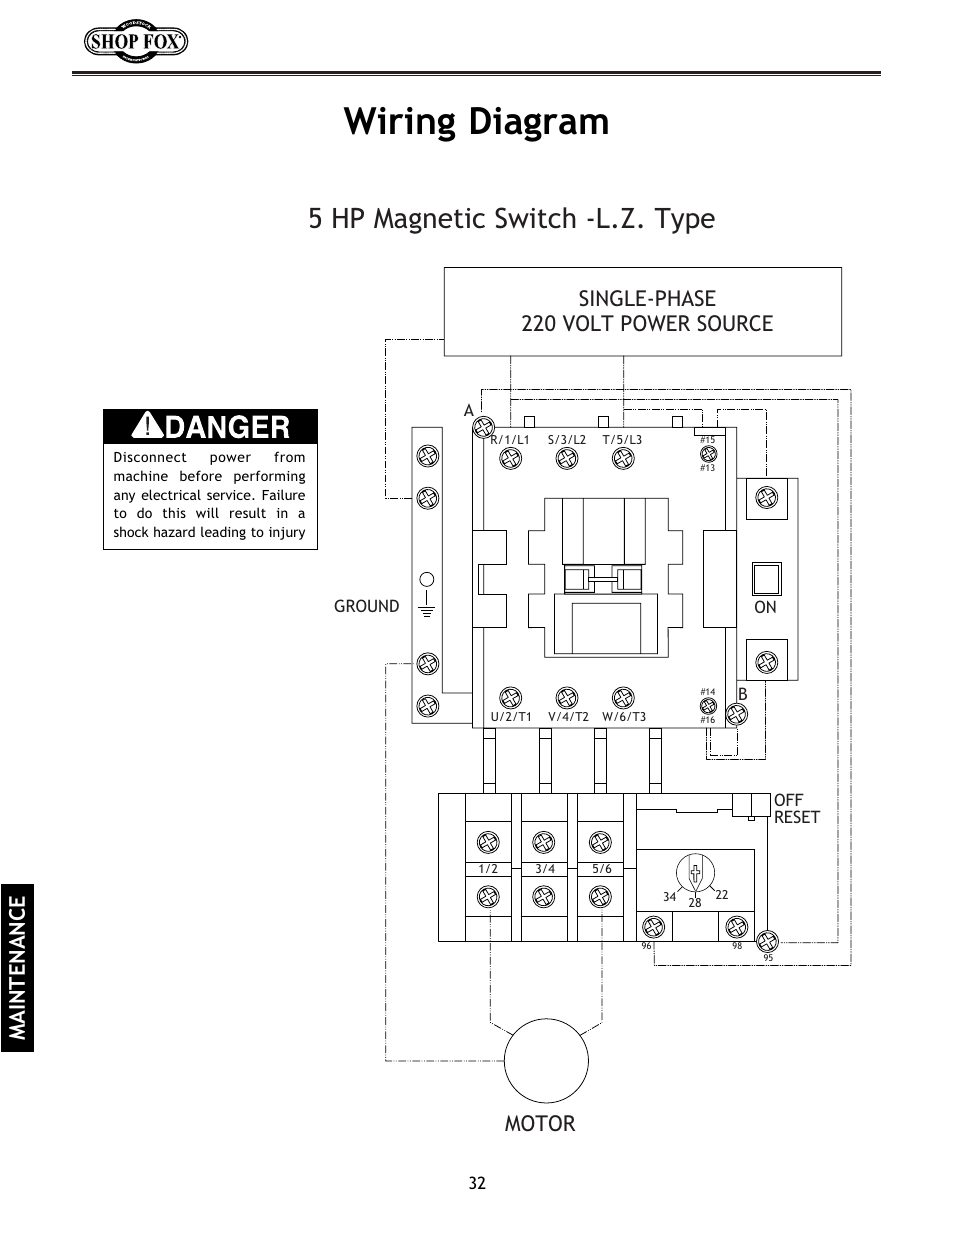 220 Volt Magnetic Switch Wiring Diagram - Wiring Diagrams Second Magnetic Electrical Switches Wiring Diagram on transformers wiring diagrams, electrical switches sketches, lighting wiring diagrams, electric motors wiring diagrams, electrical switches schematics, air conditioners wiring diagrams, boilers wiring diagrams, circuit breakers wiring diagrams,